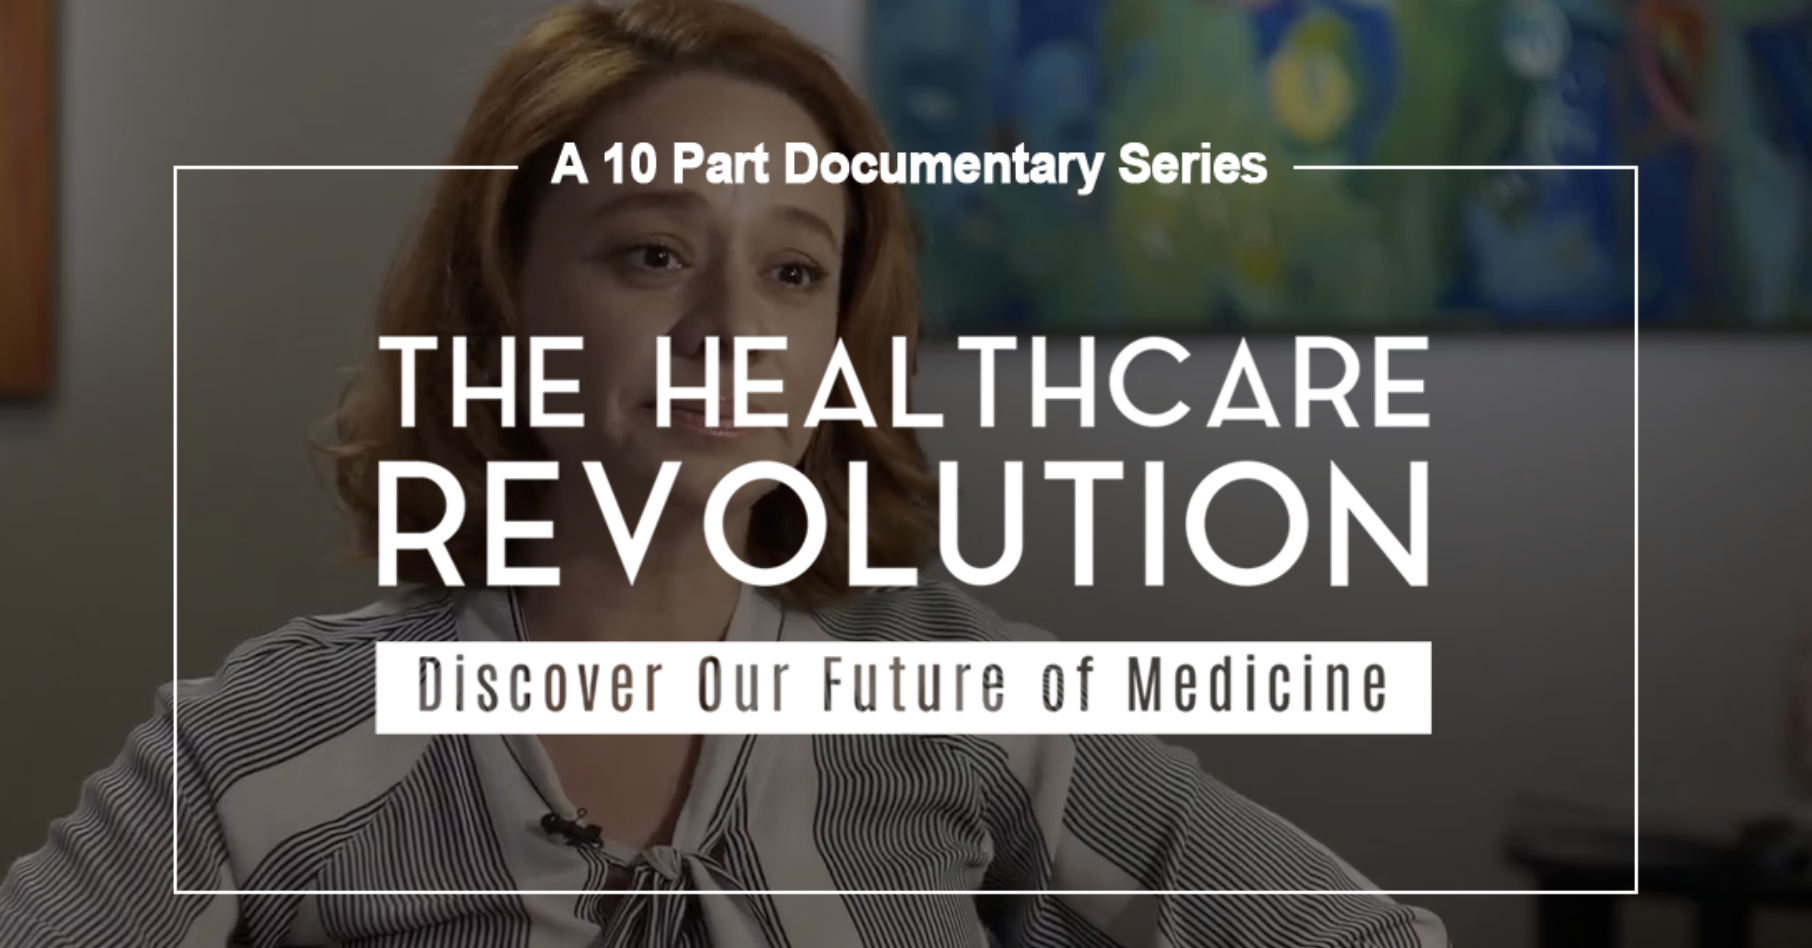 The Healthcare Revolution Is Coming